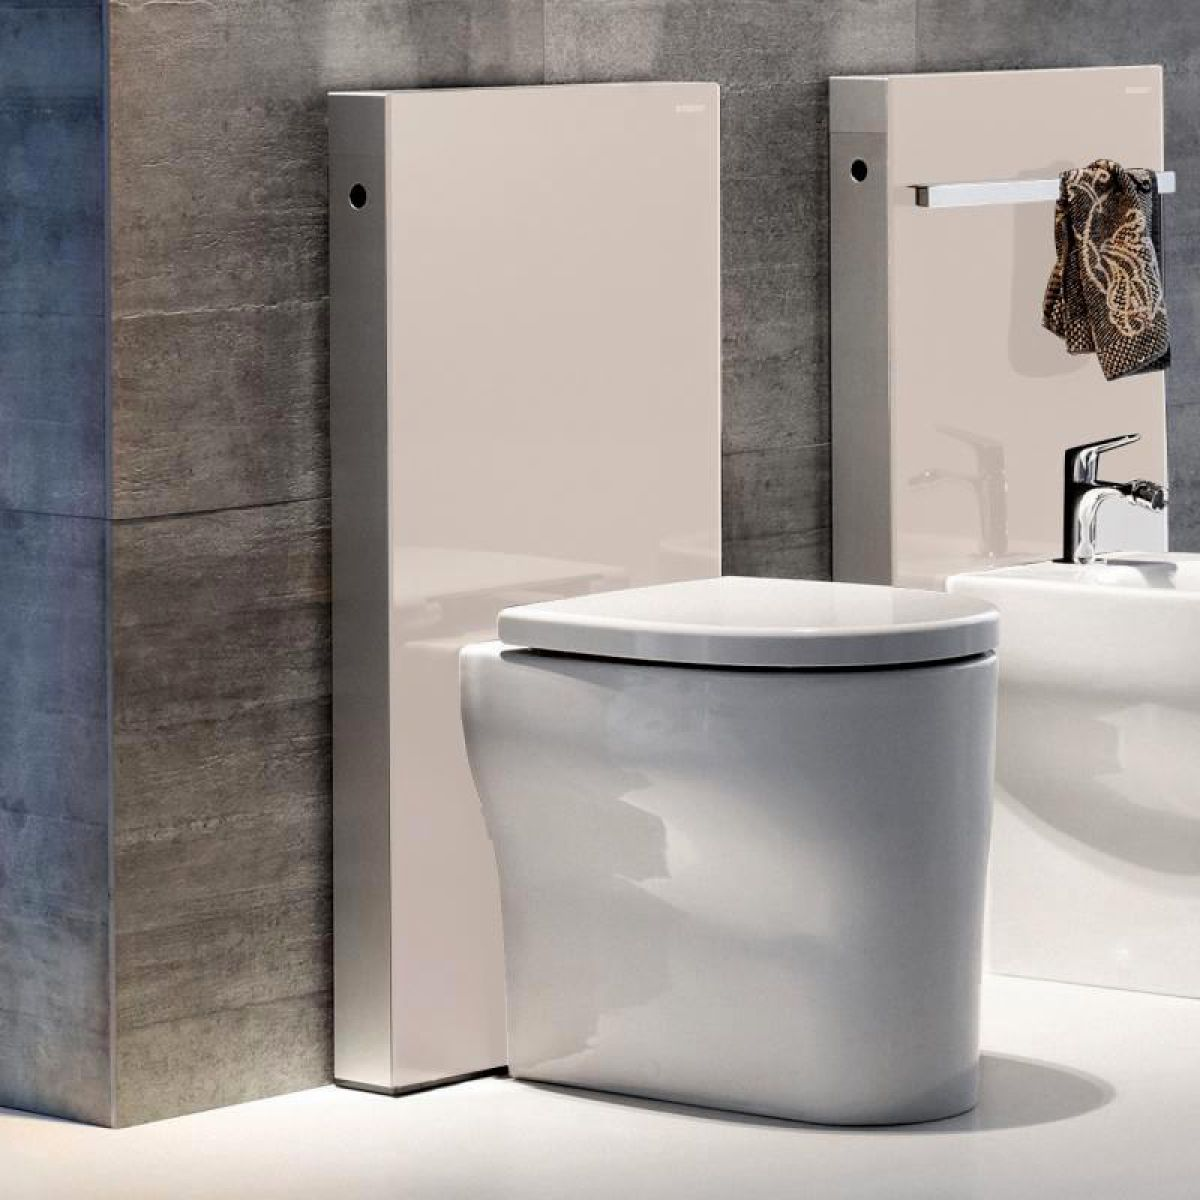 Geberit duofix frame for wall hung wc h82 with omega cistern 12cm - Home Toilets Concealed Toilet Cisterns